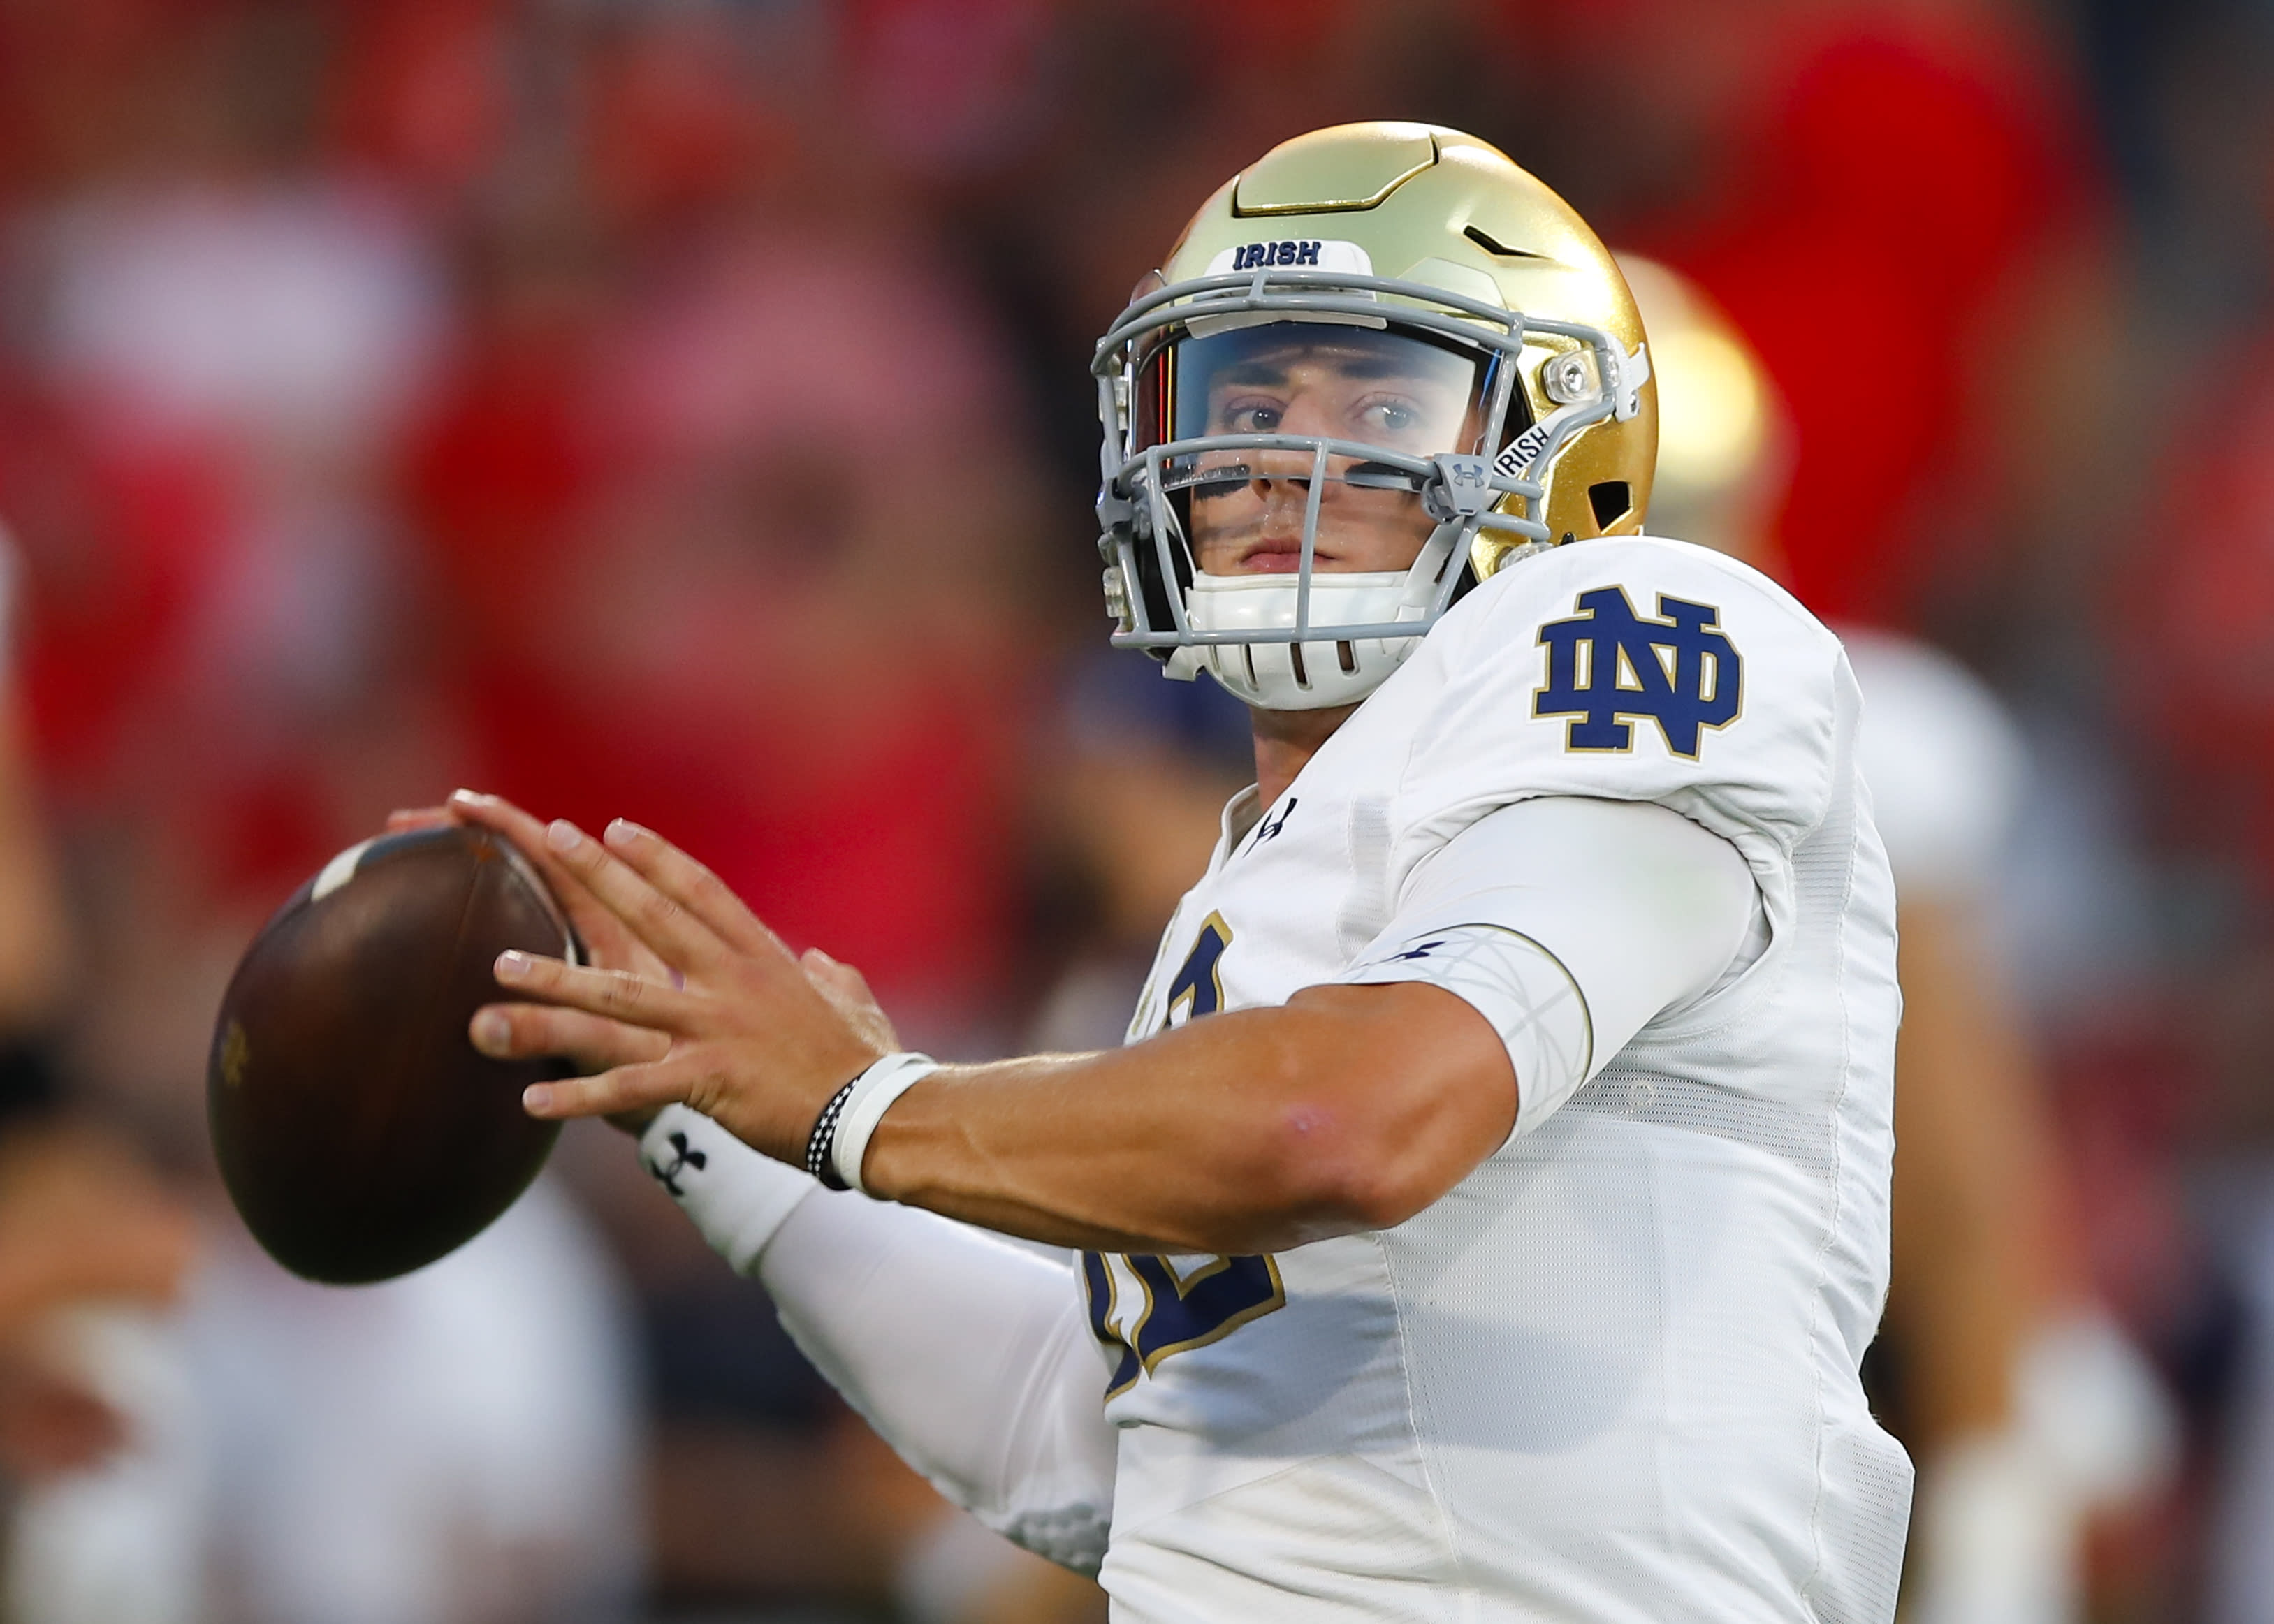 Live blog: Week 4 college football Saturday with Yahoo Sports